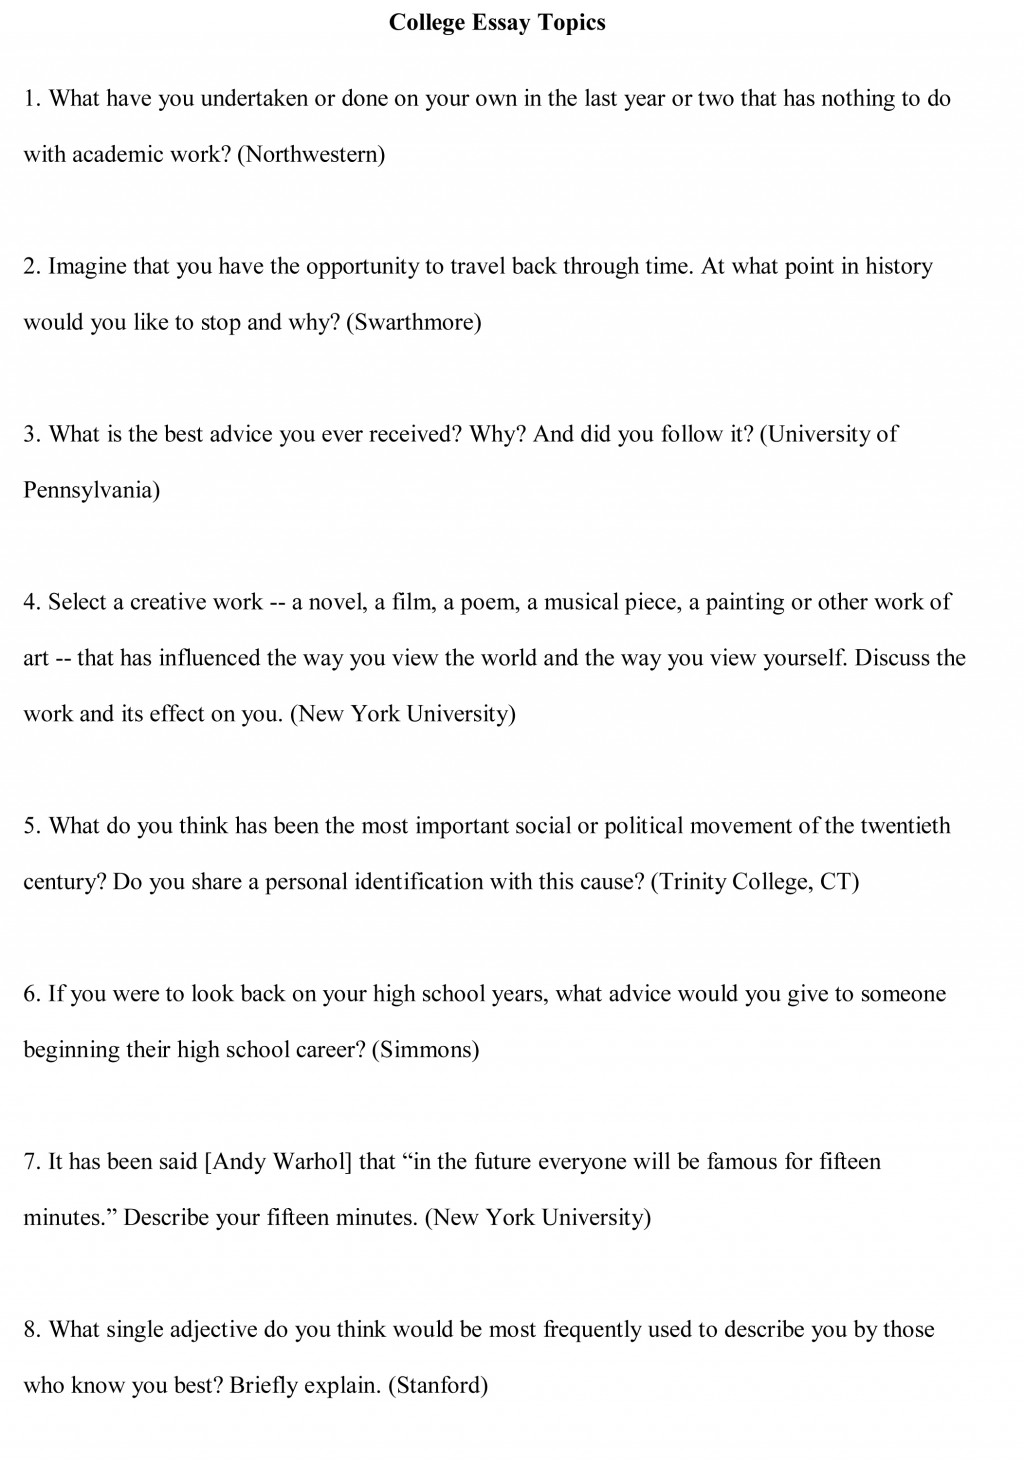 014 Essay Topics College Free Sample1 Archaicawful For High School English Schoolers Grade 8 Large